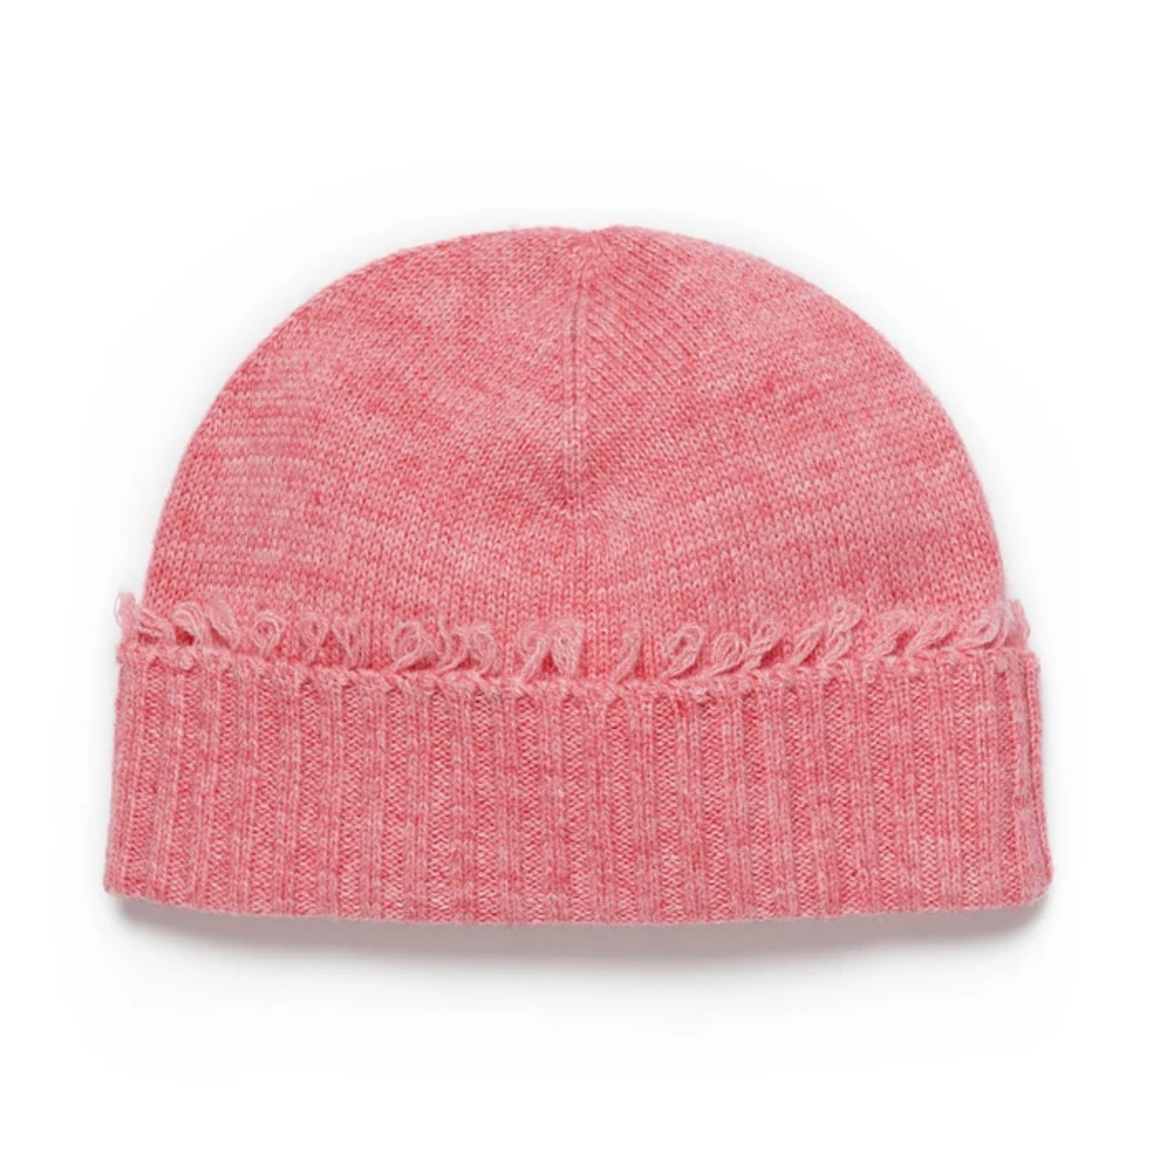 WINDSOR BEANIE - BLUSH MARLE